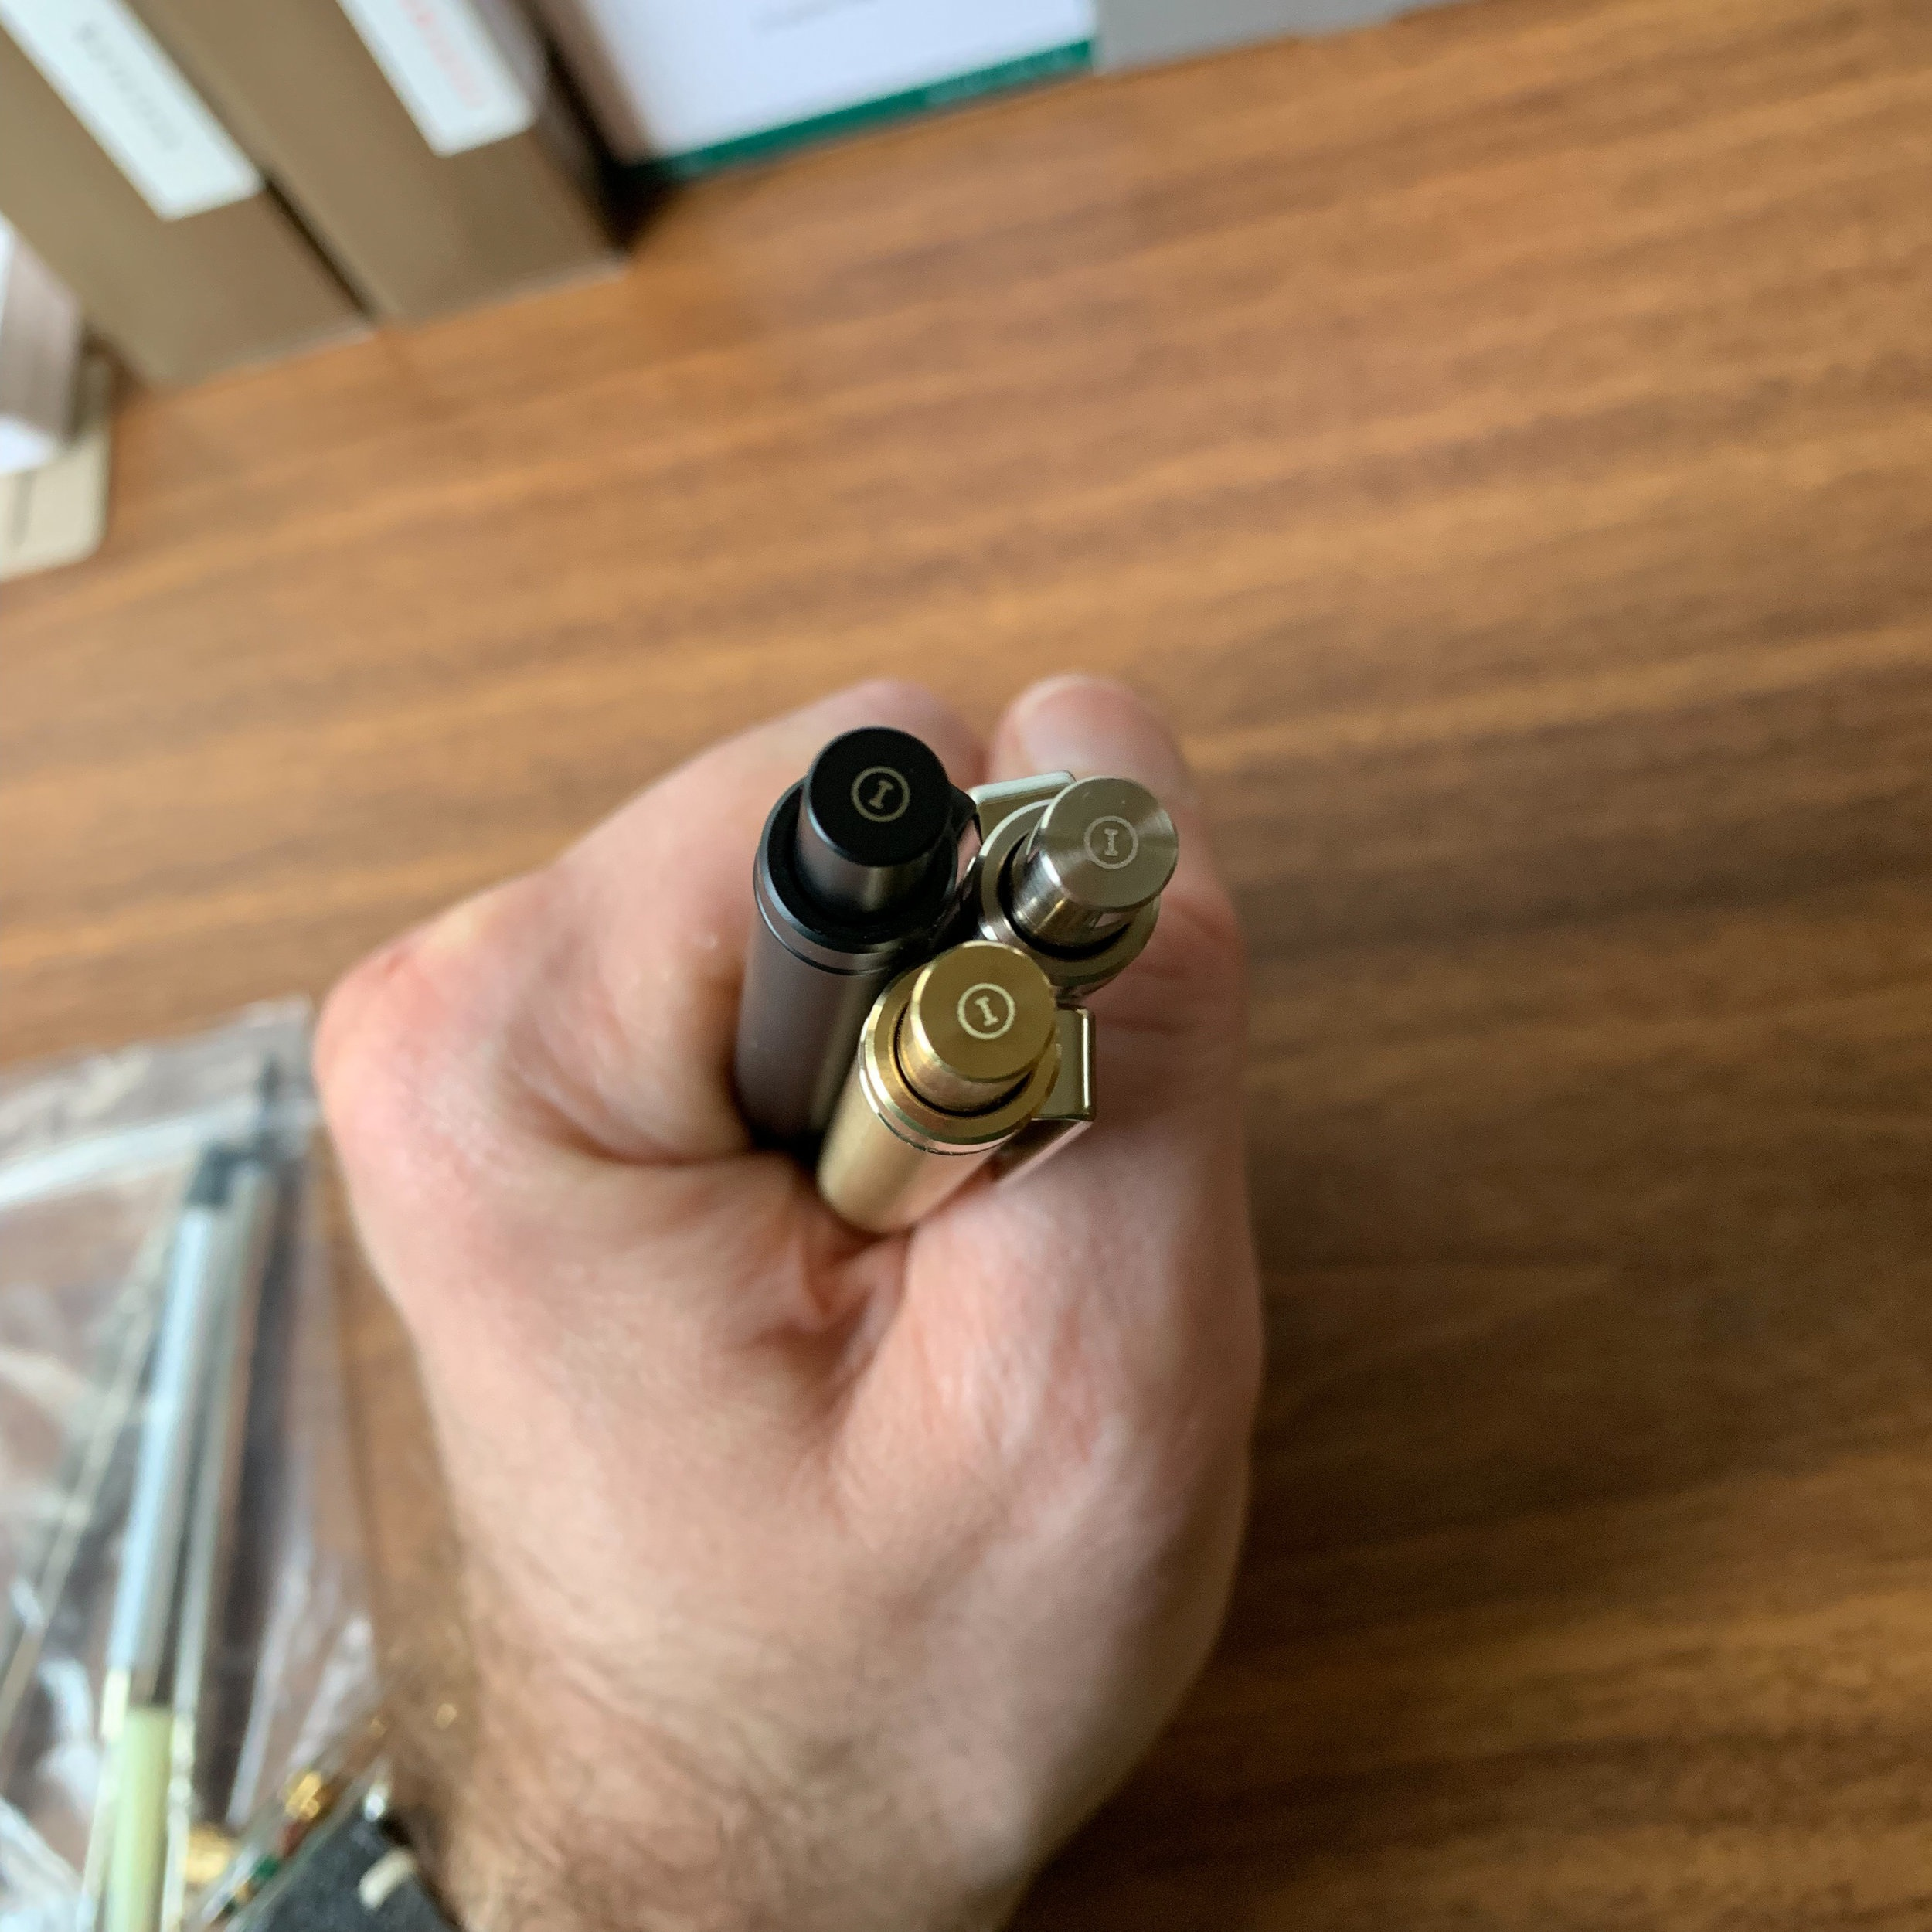 """Like Inventery's other products, each Mechanical Pen/Pencil is engraved with the """"I"""" logo on the top of the knock. And, as with Inventery's other products, the Interchangeable Pen/Pencil is available in three finishes: brass, brass with a black oxide coating, and brass with a nickel coating."""